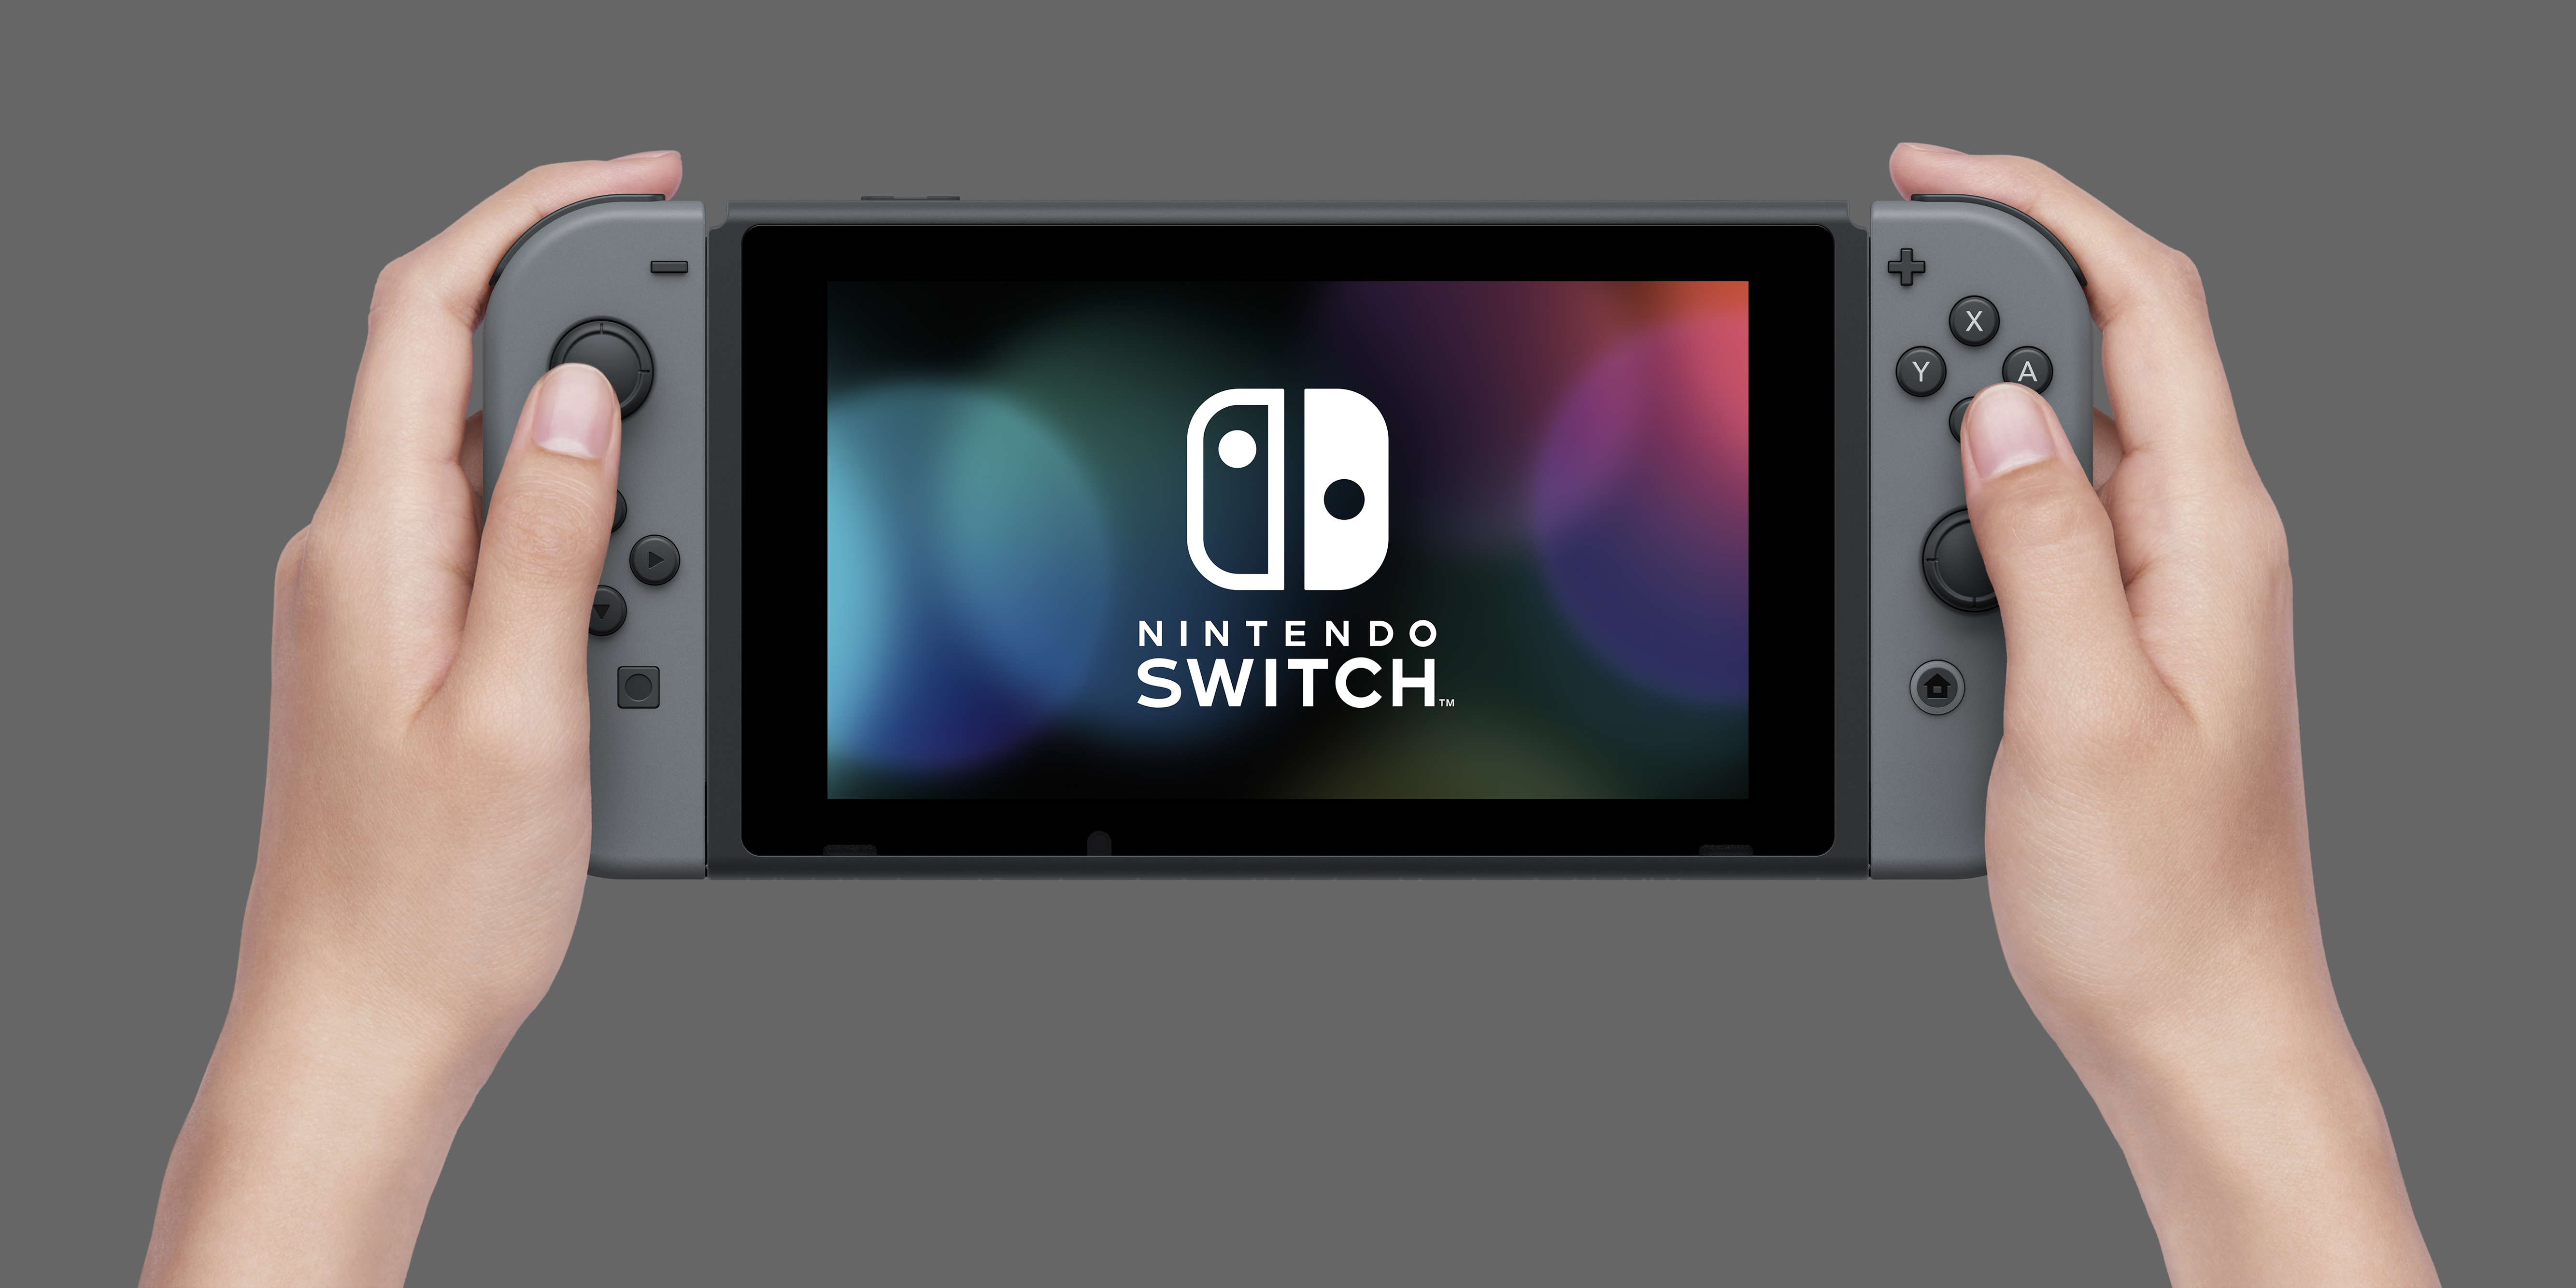 Nintendo Switch Console Hd Computer 4k Wallpapers HD Wallpapers Download Free Images Wallpaper [1000image.com]